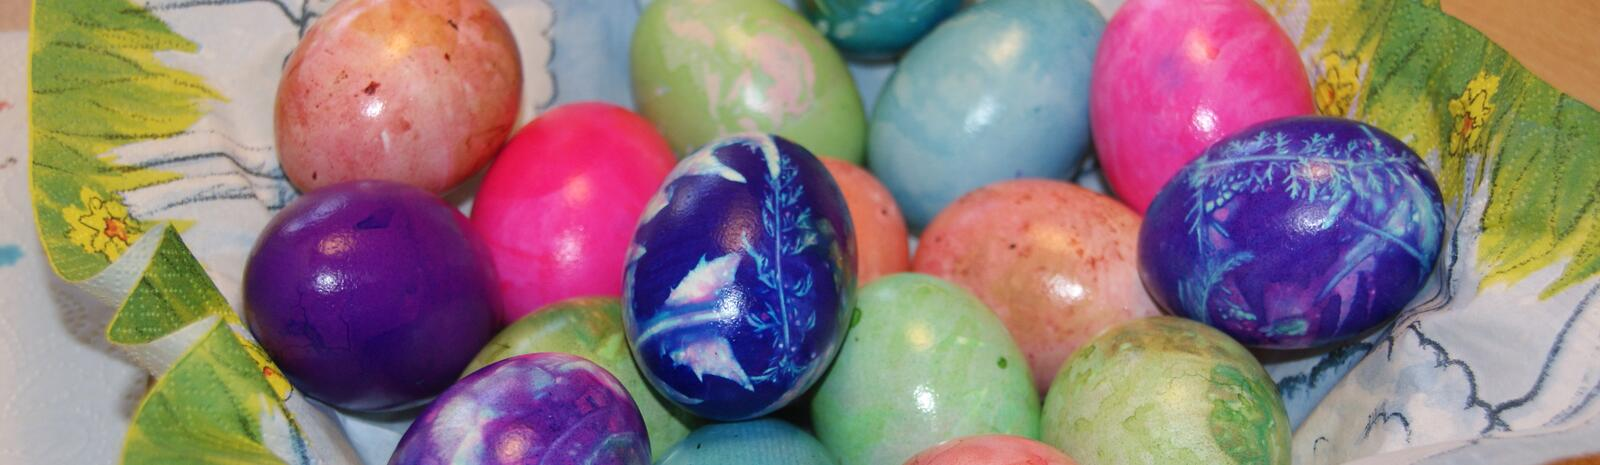 Colorful Easter eggs - naturally colored | © Bianca Passrugger-Lörgetbohrer